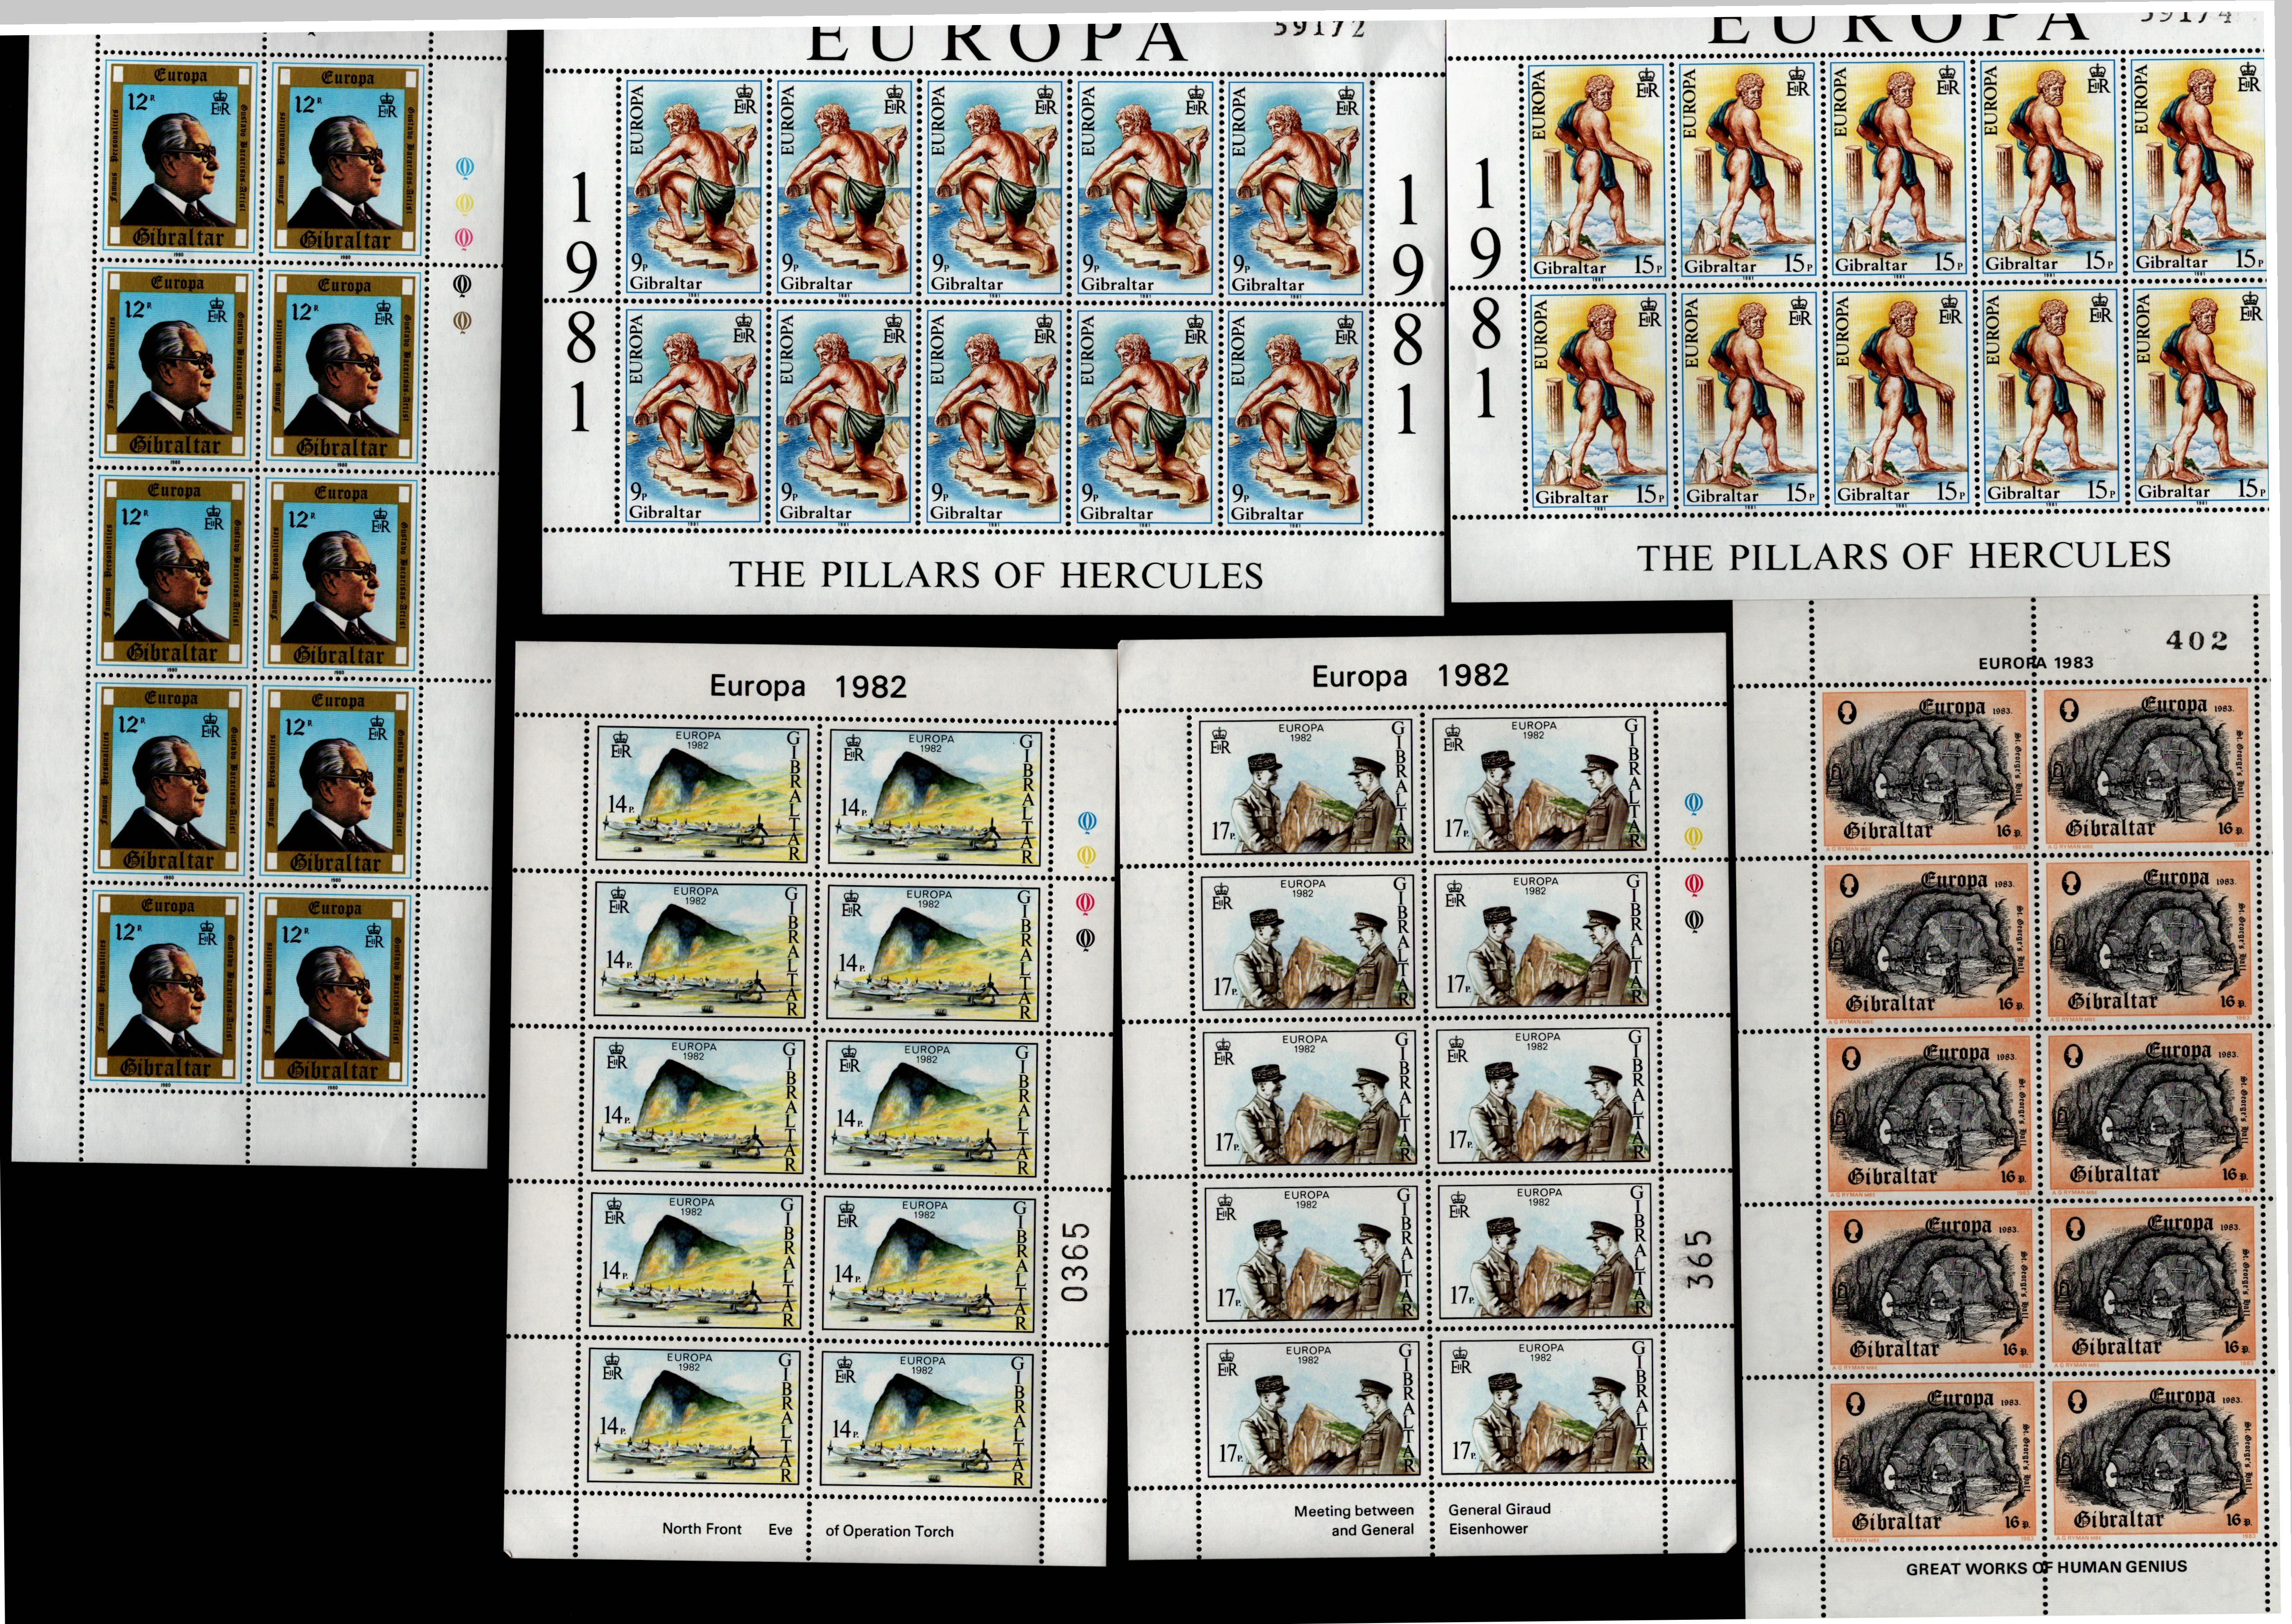 Gibraltar - Europa unmounted mint stamp collection. 12 sheets. Good condition. We combine postage on